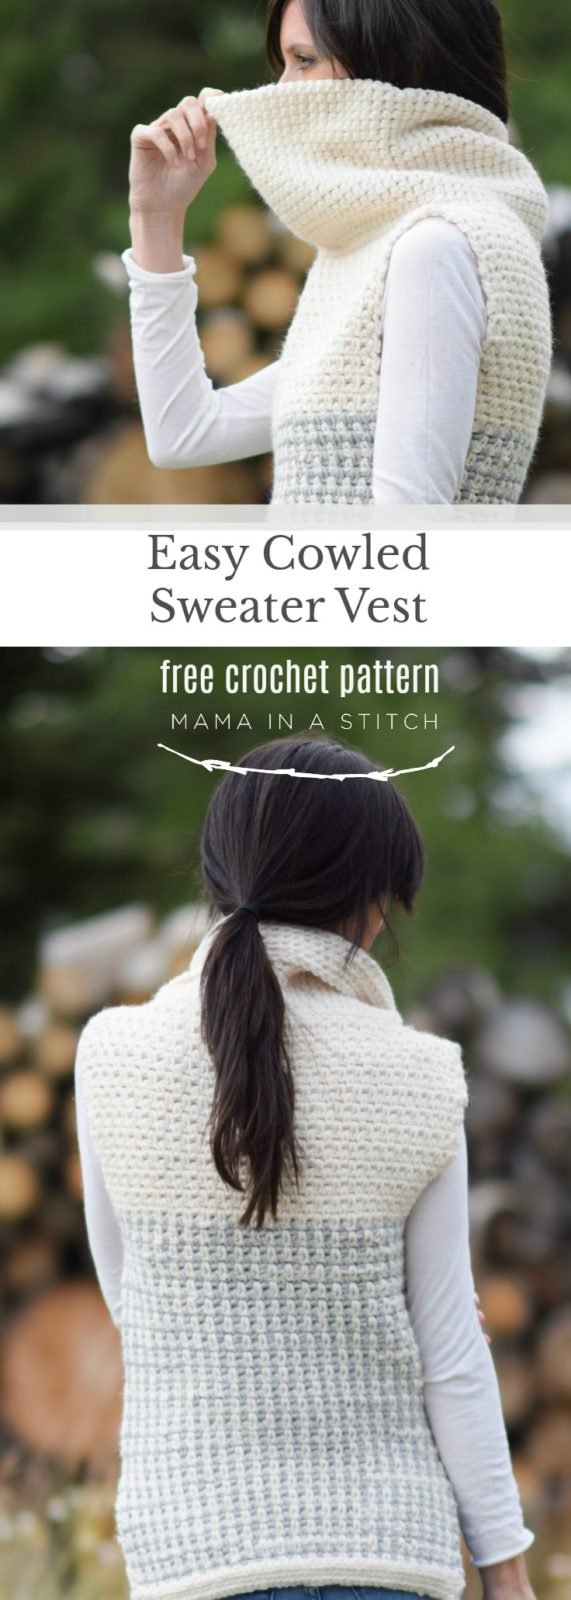 Easy Crochet Cowled Sweater Vest – Mama In A Stitch